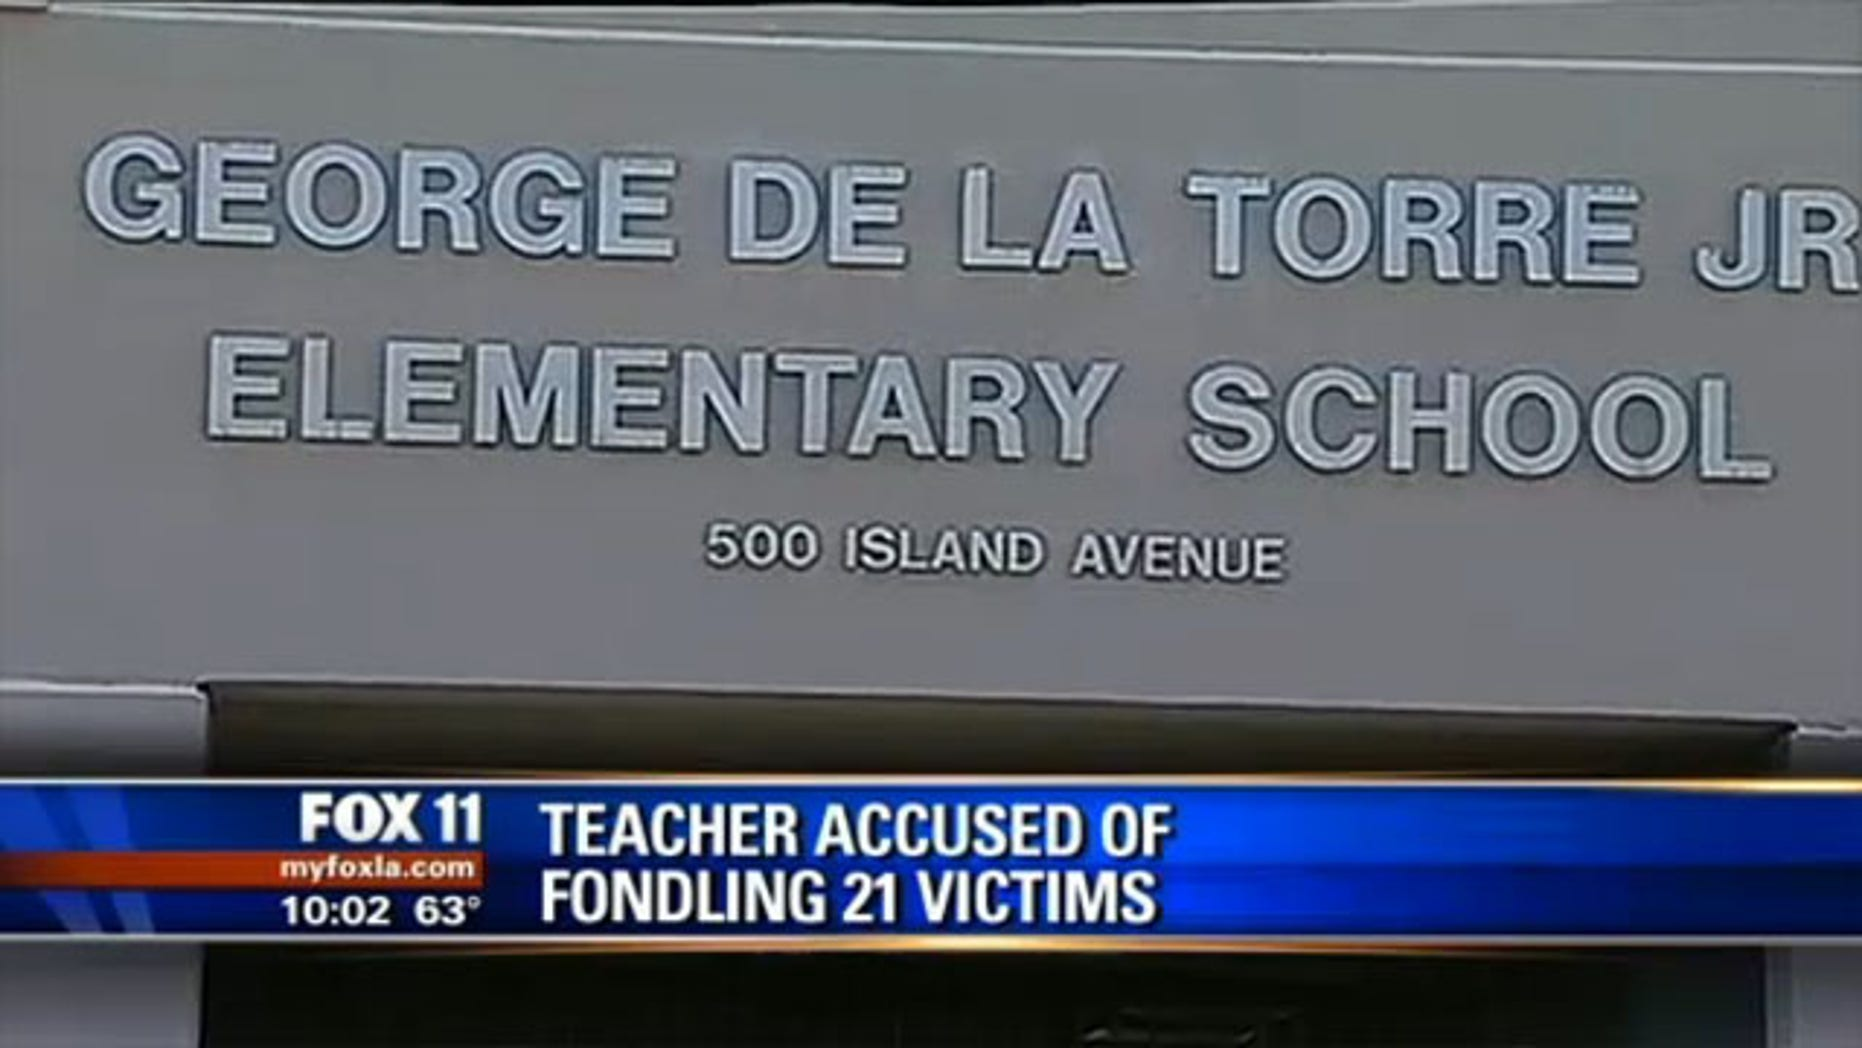 The school where Robert Pimentel allegedly carried out his abuse against children.